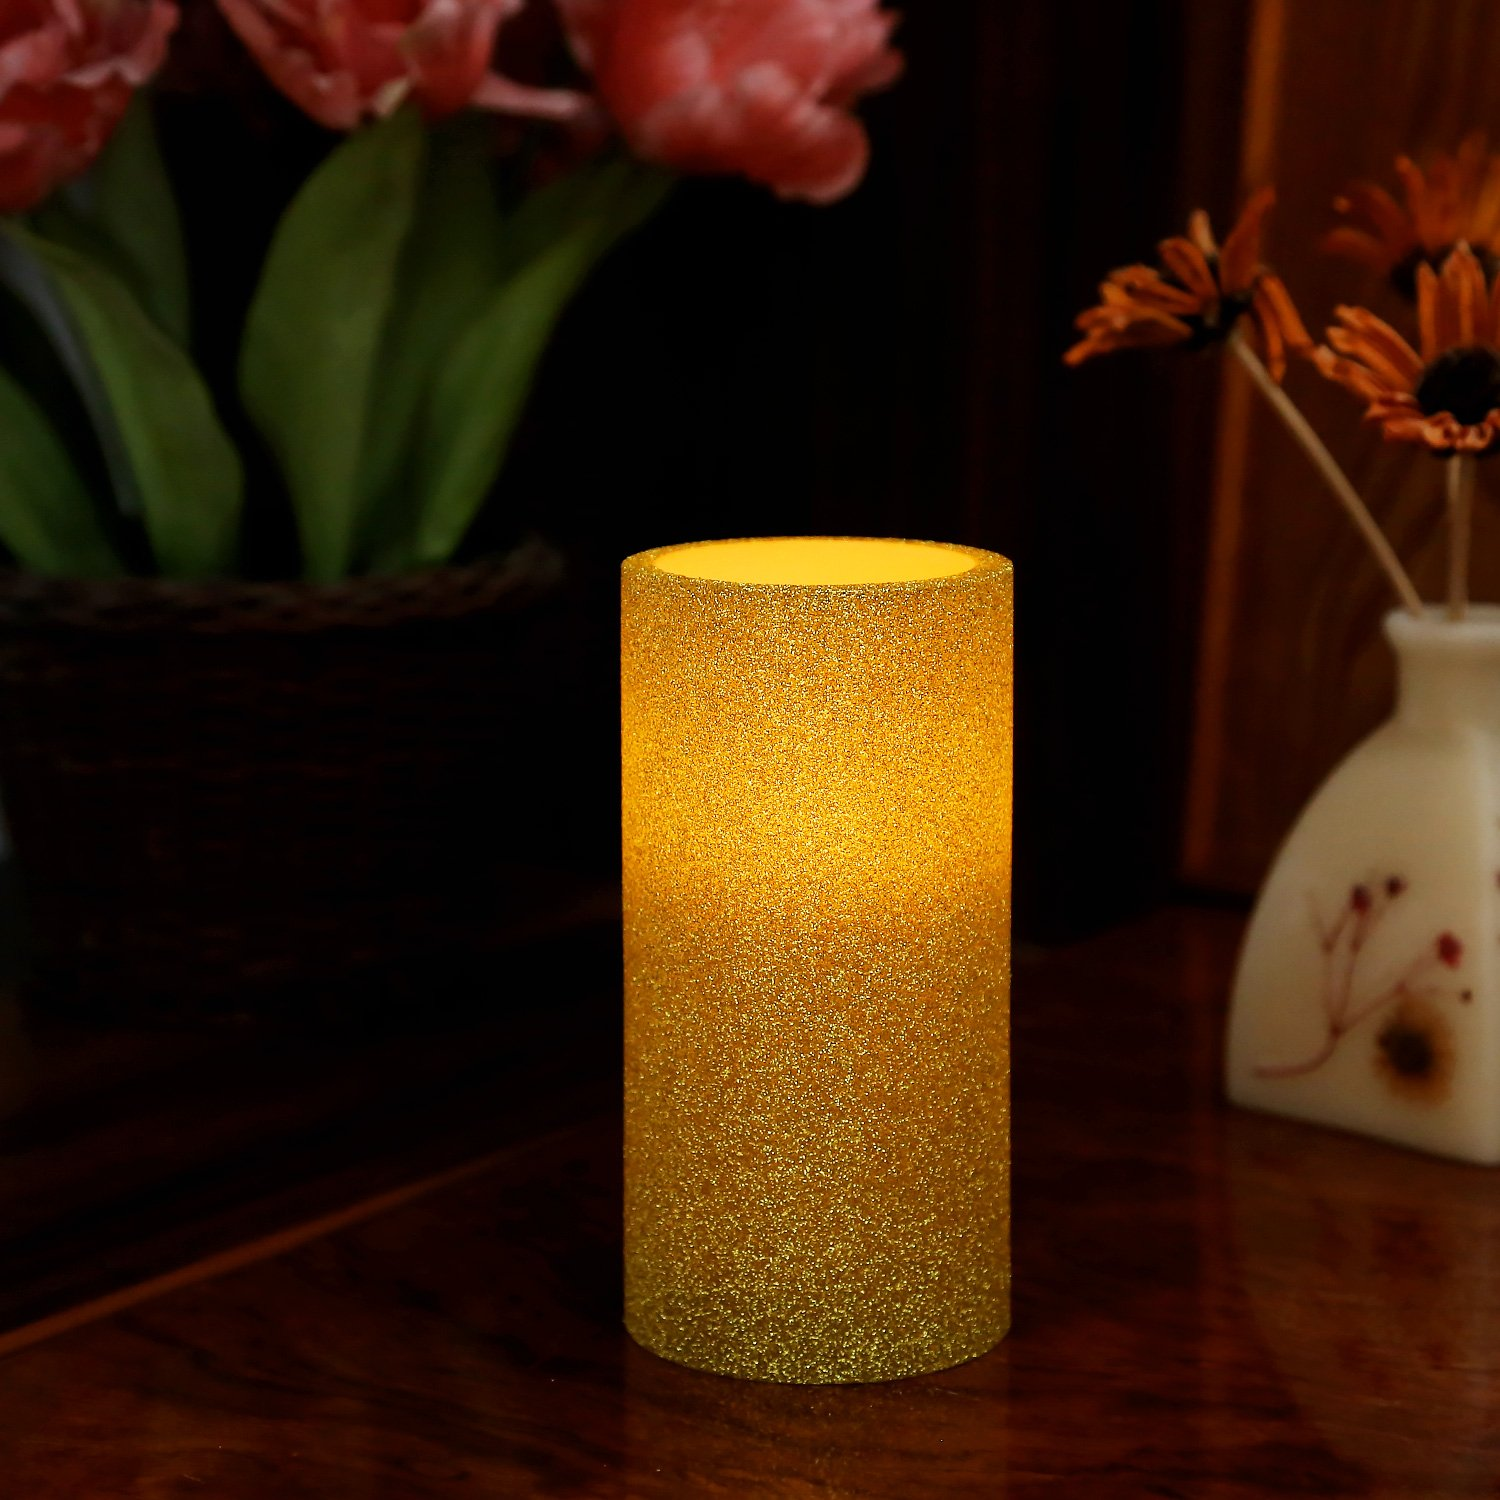 Greluna Gold Glitter Flameless LED Candle with Timer Battery Operated Candles for Holiday Decorations and Gift,3X6 inches